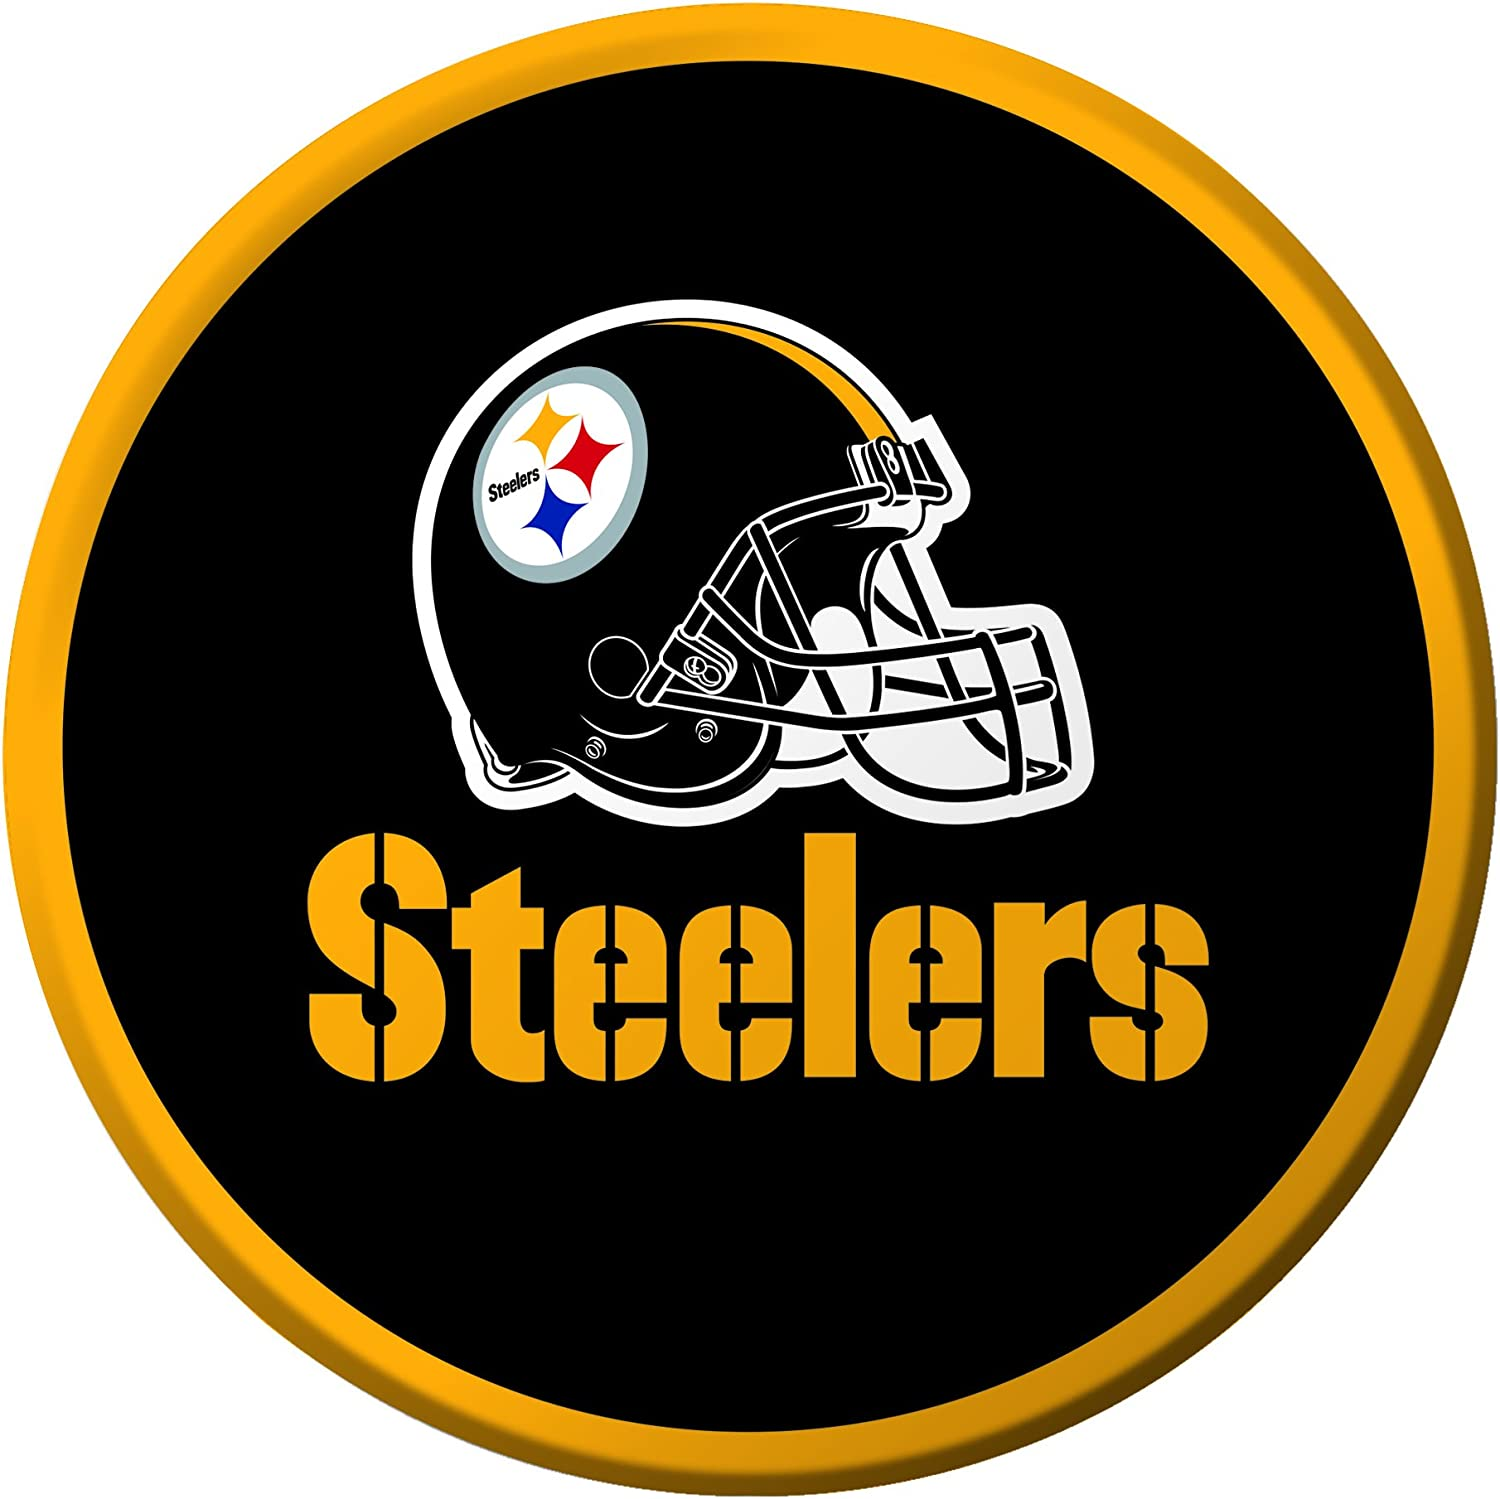 Creative Converting 8 Count Pittsburgh Steelers Paper Dessert Plates